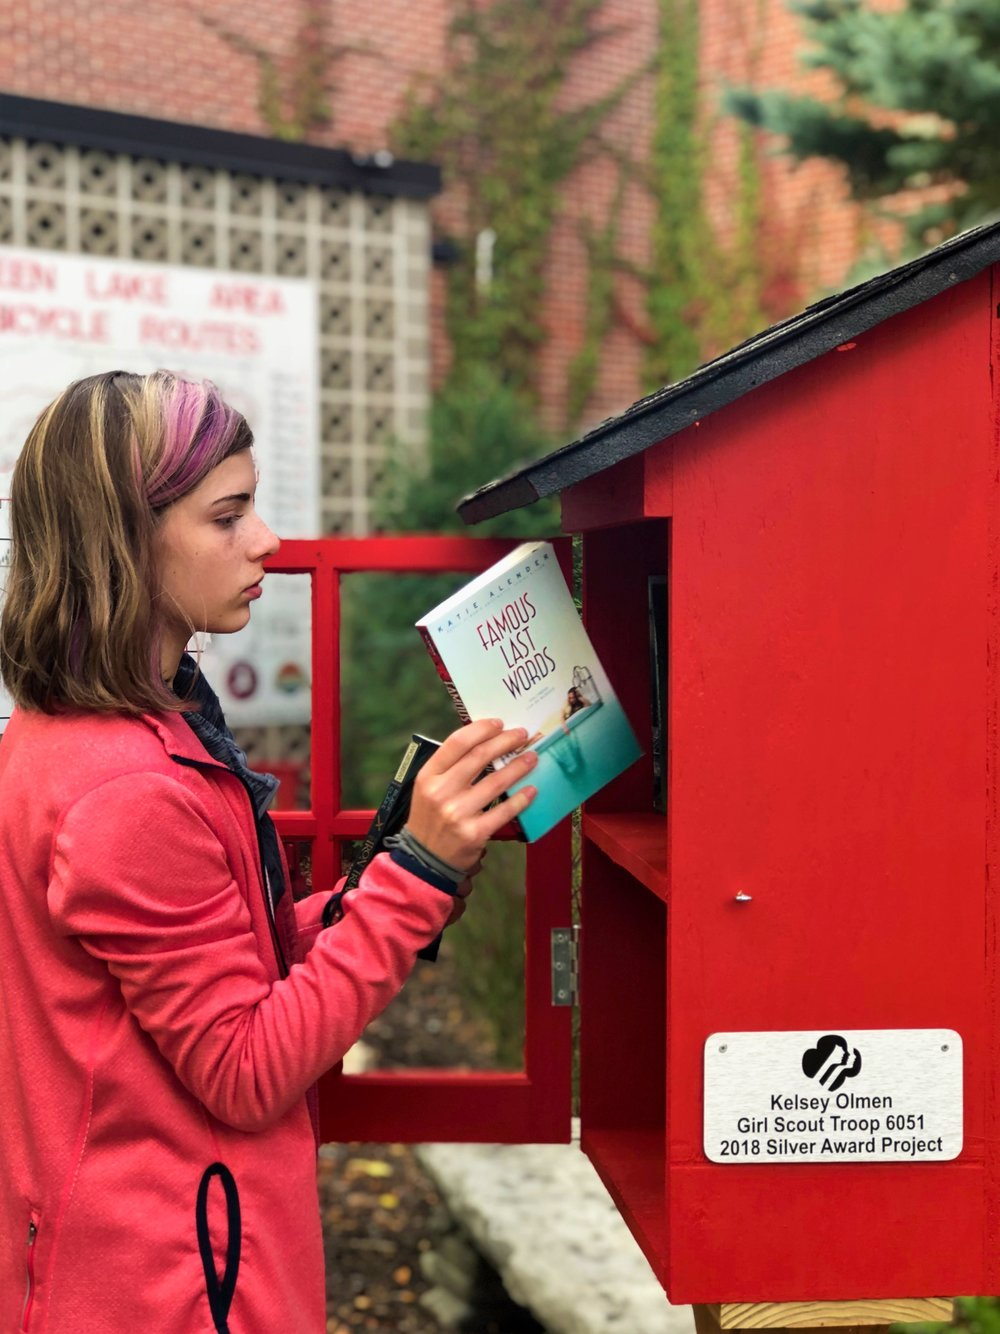 Kelsey paves the way by filling the newly installed Little Free Library with some of her own books in hopes that others may do the same.